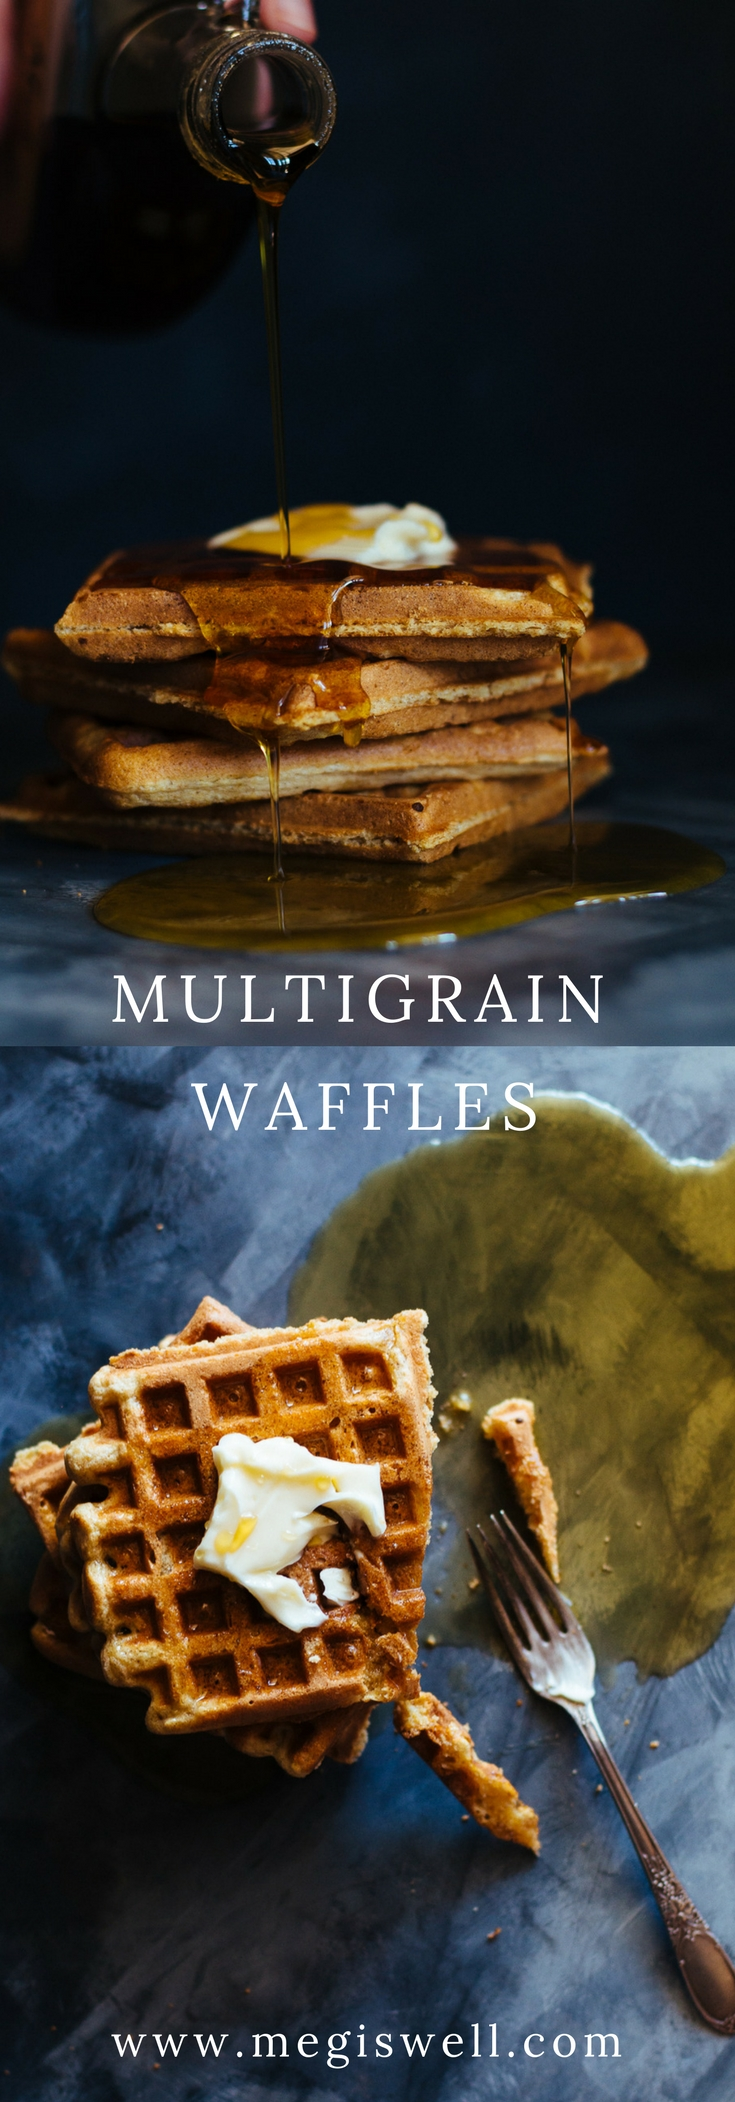 These Multigrain Waffles use a mix of whole spelt, millet, and oat flour to create depth of flavor. They're crispy on the outside, fluffy on the inside, and freezer friendly. #waffles #brunch #breakfast #bridalshower #mothersday